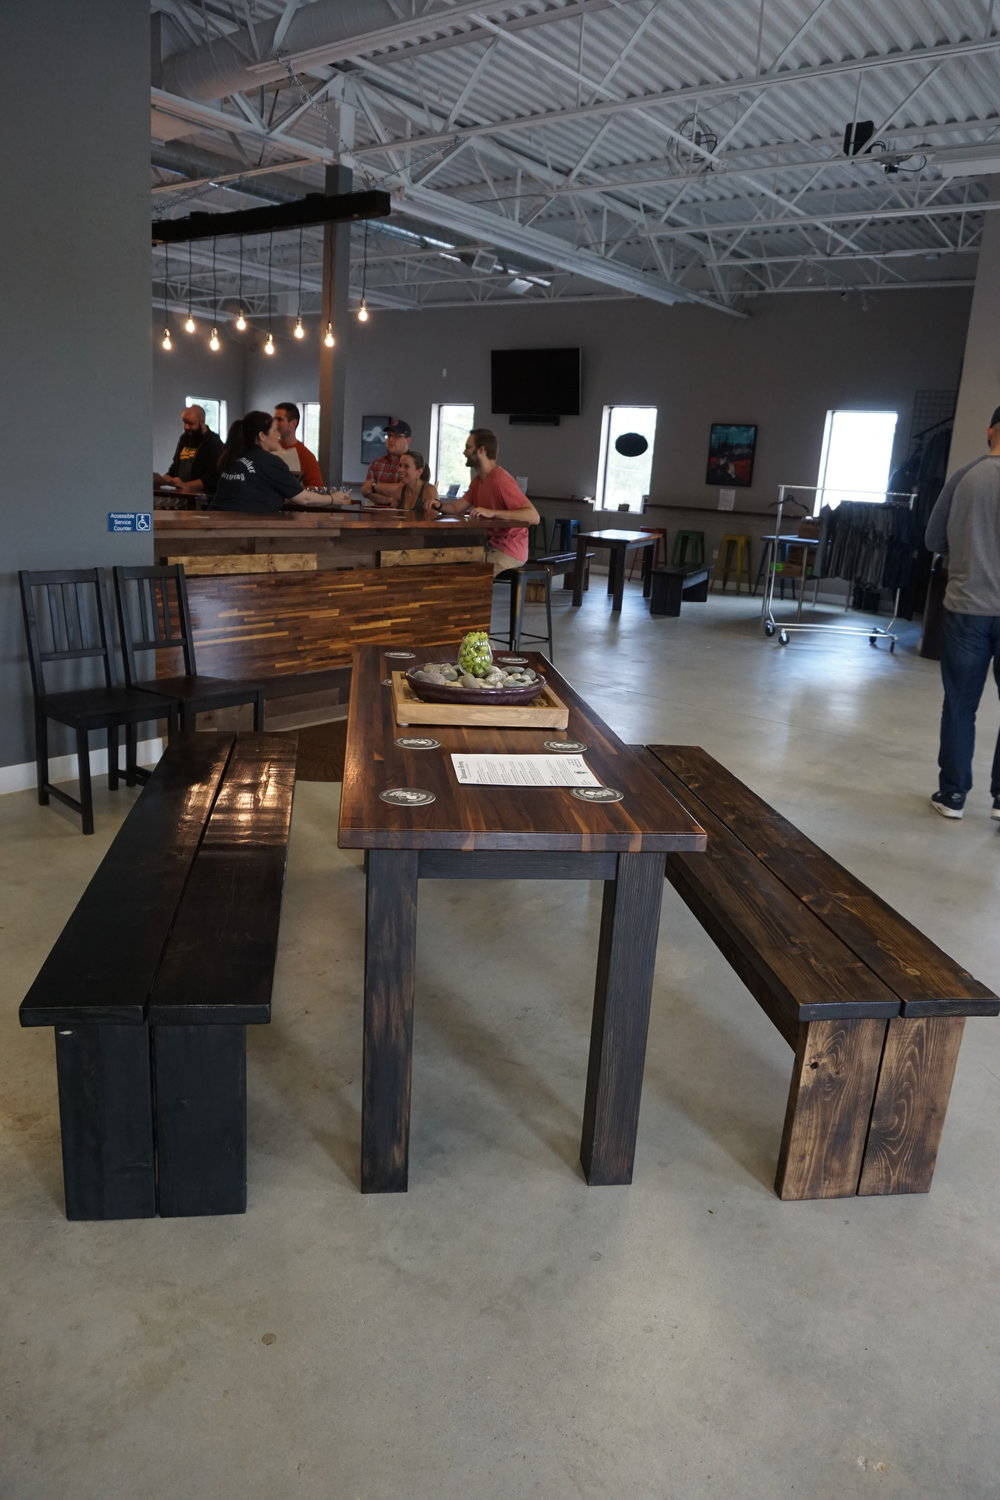 I love all the woodwork throughout the Taproom!